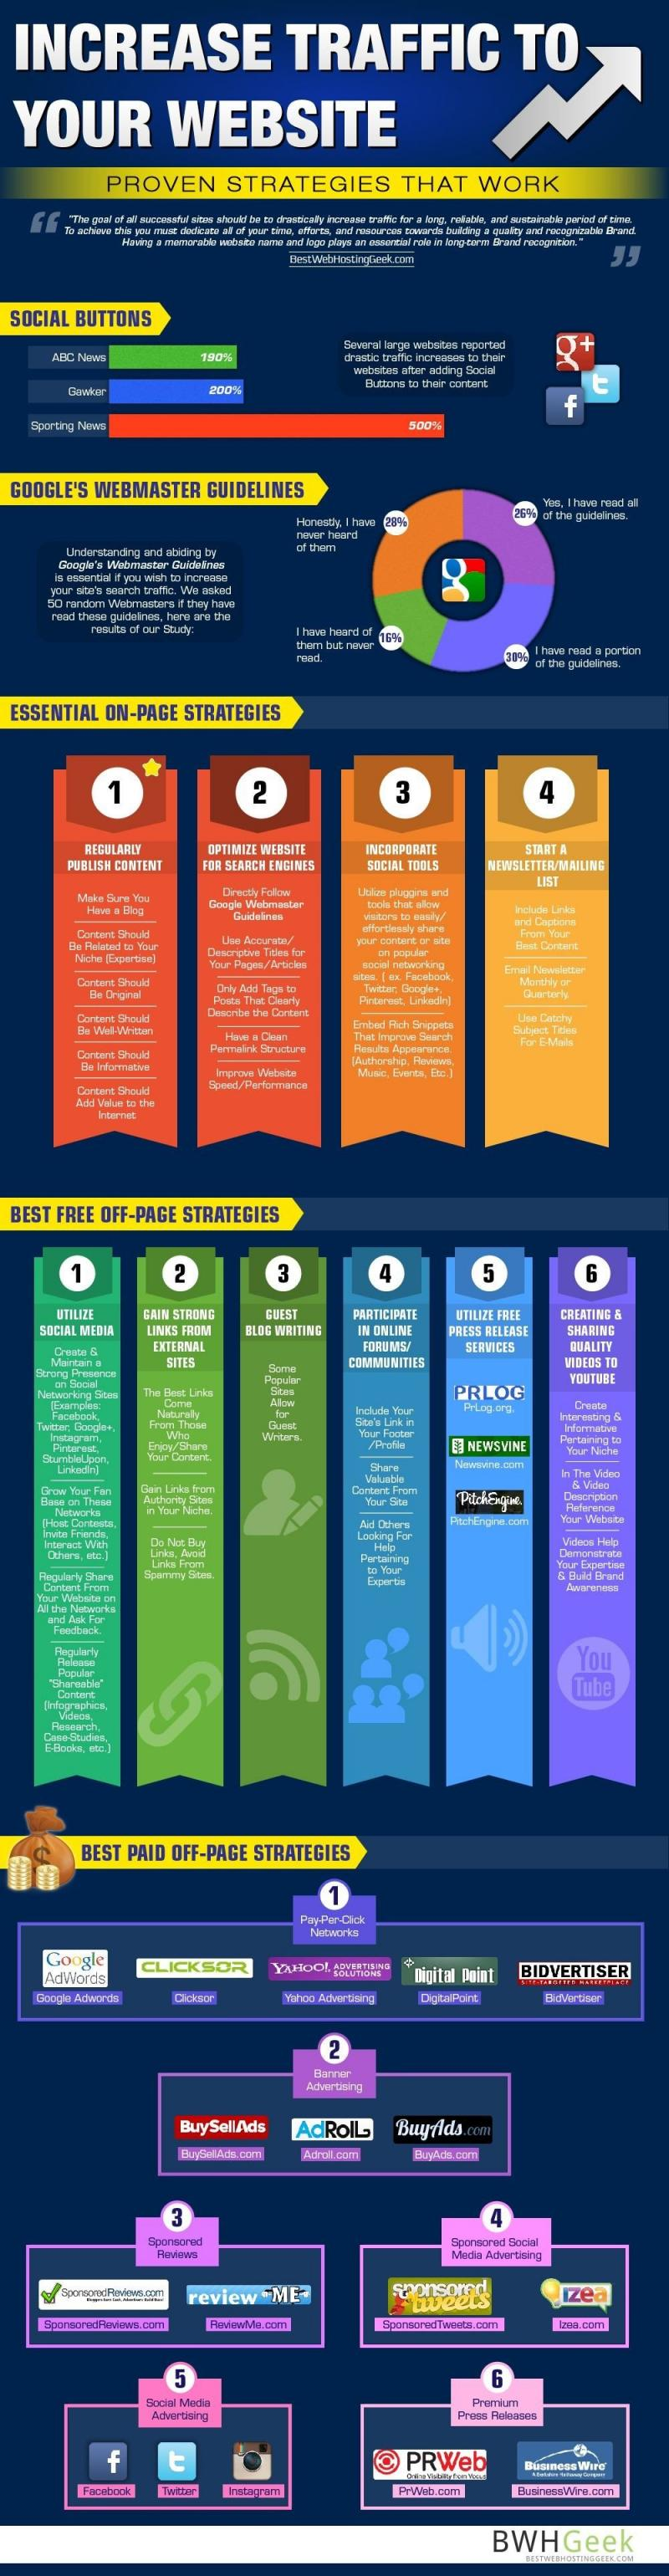 Increase traffic to your website #Infographic #Marketing